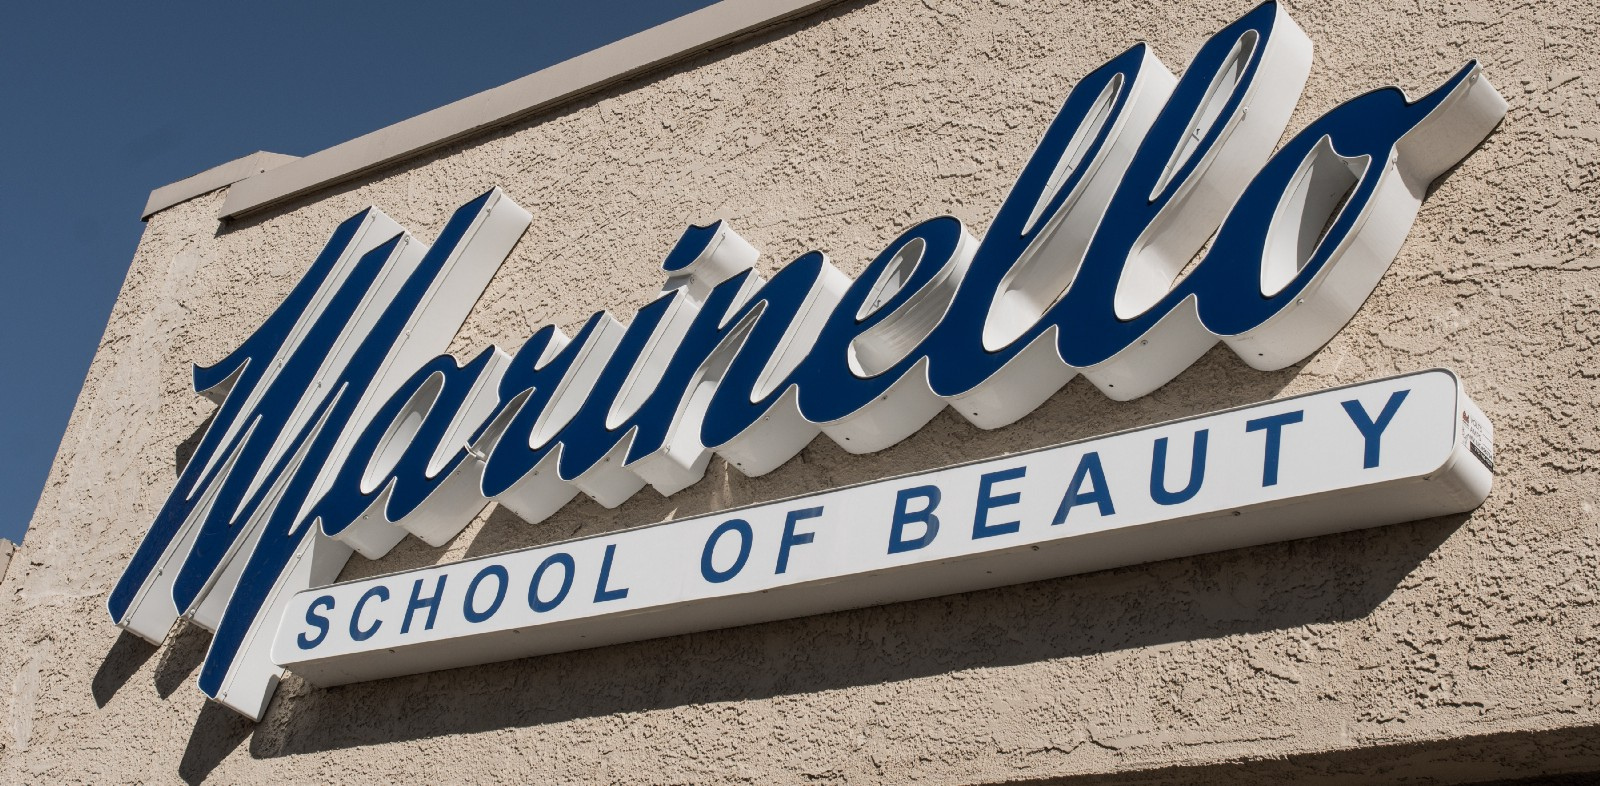 Marinello Schools of Beauty closing all campuses, 4,300 students affected  - L.A. Biz